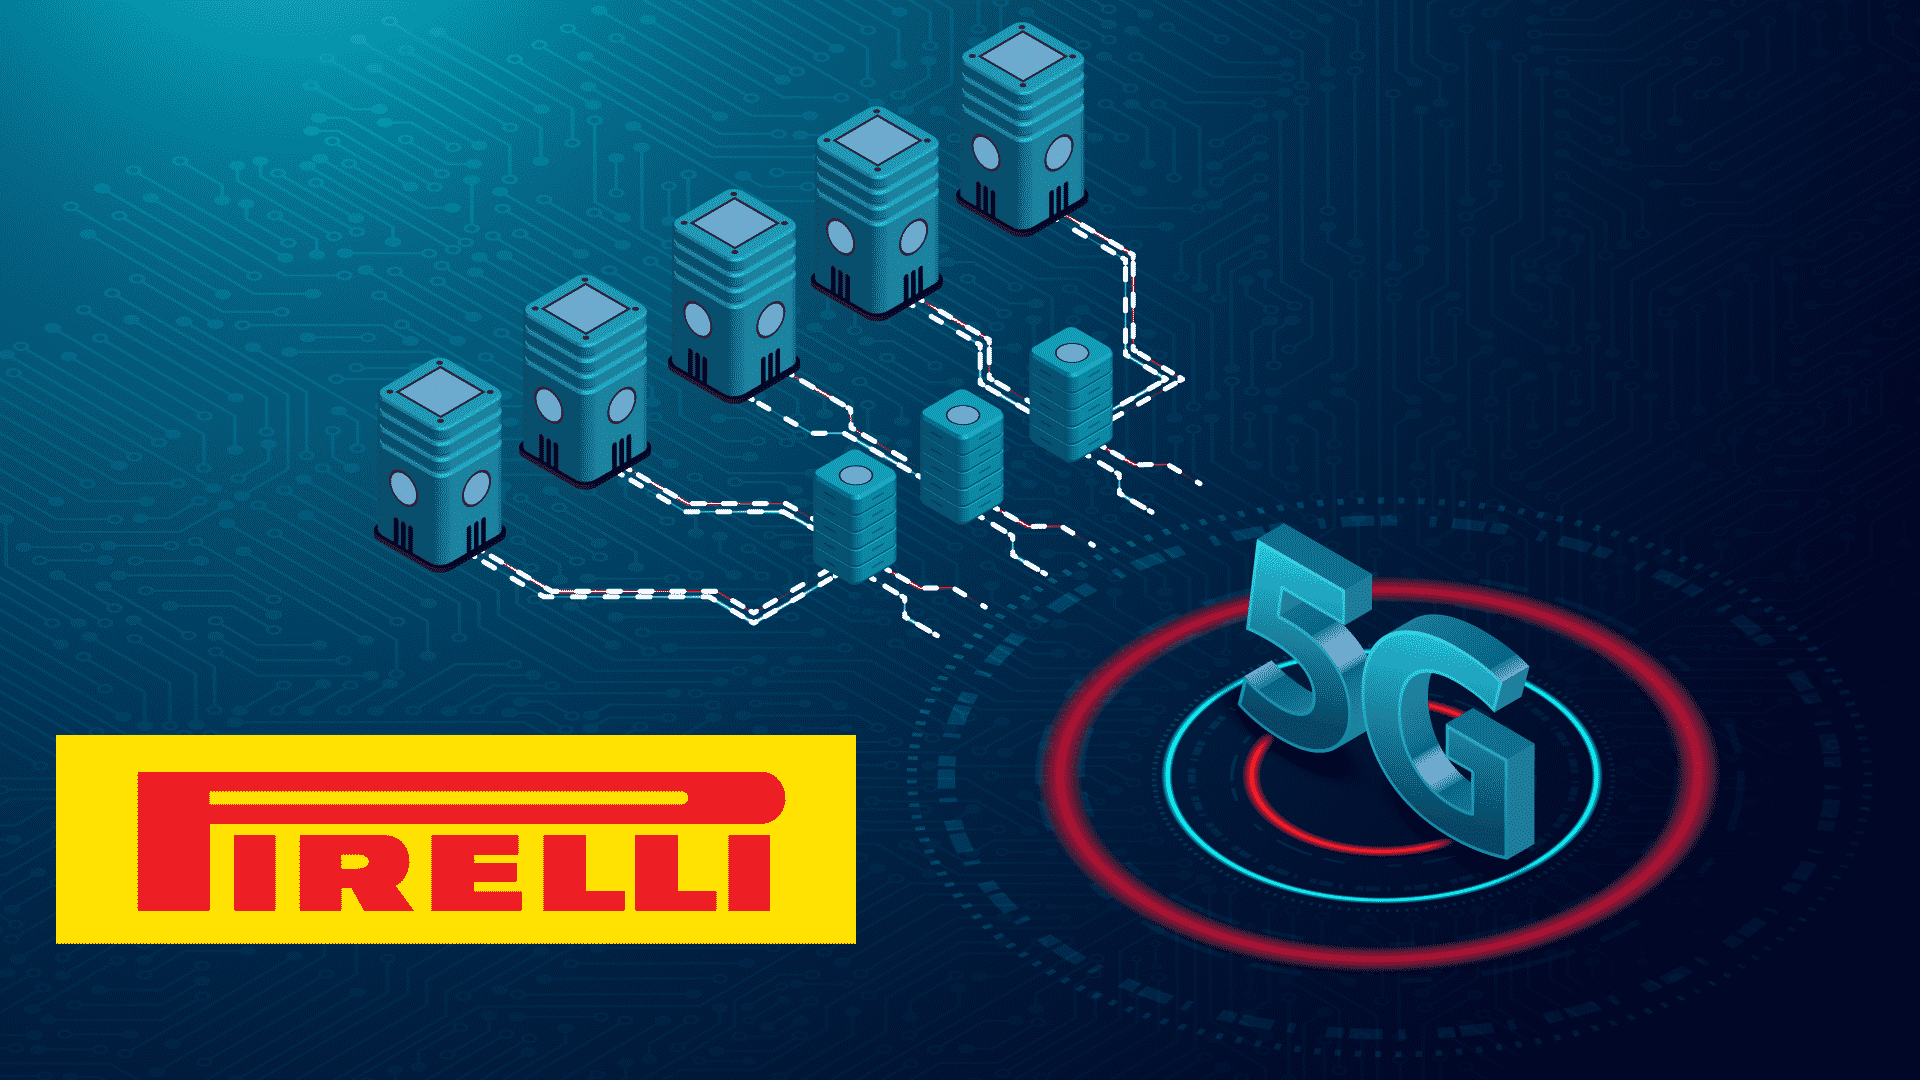 Pirelli Unveils Cyber Tyre That Uses 5G to Warn About Bad Road Conditions